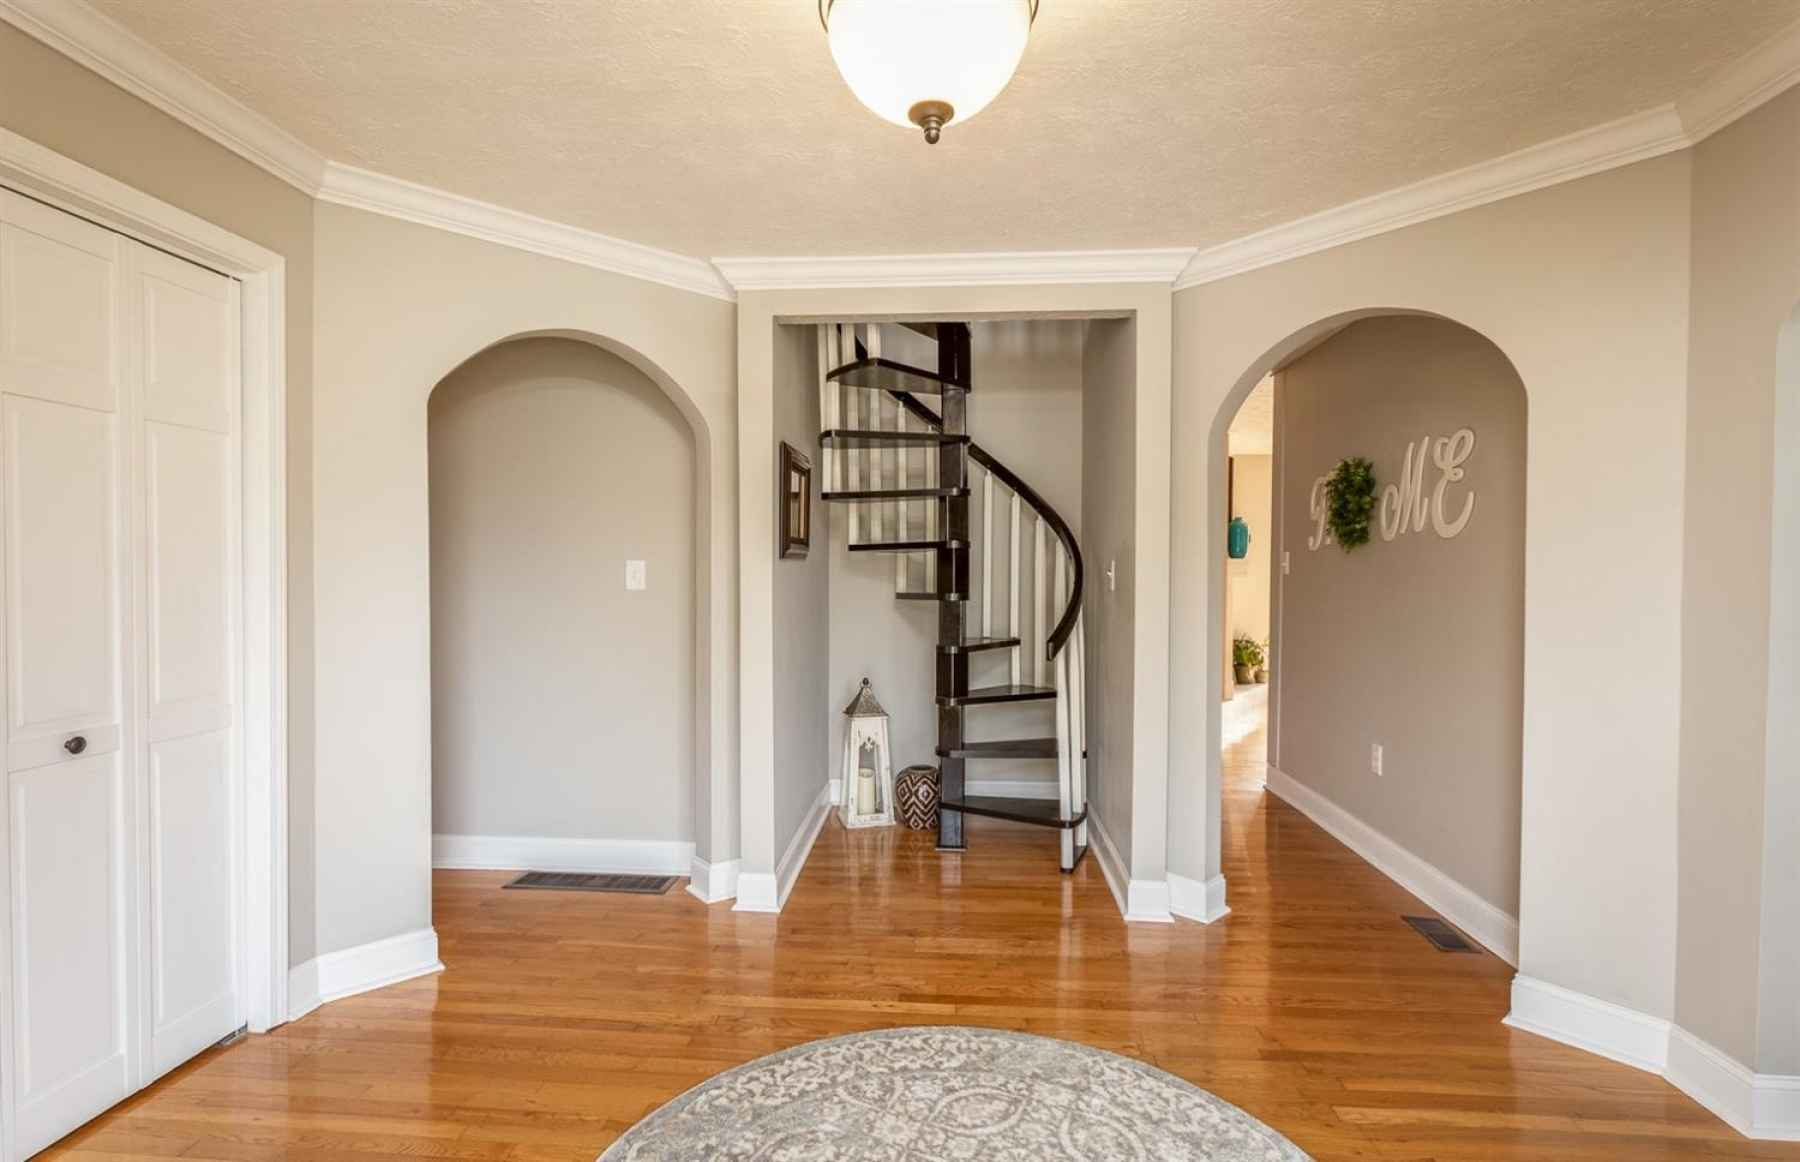 You're sure to notice the gleaming hardwood floors from the minute you step inside the home